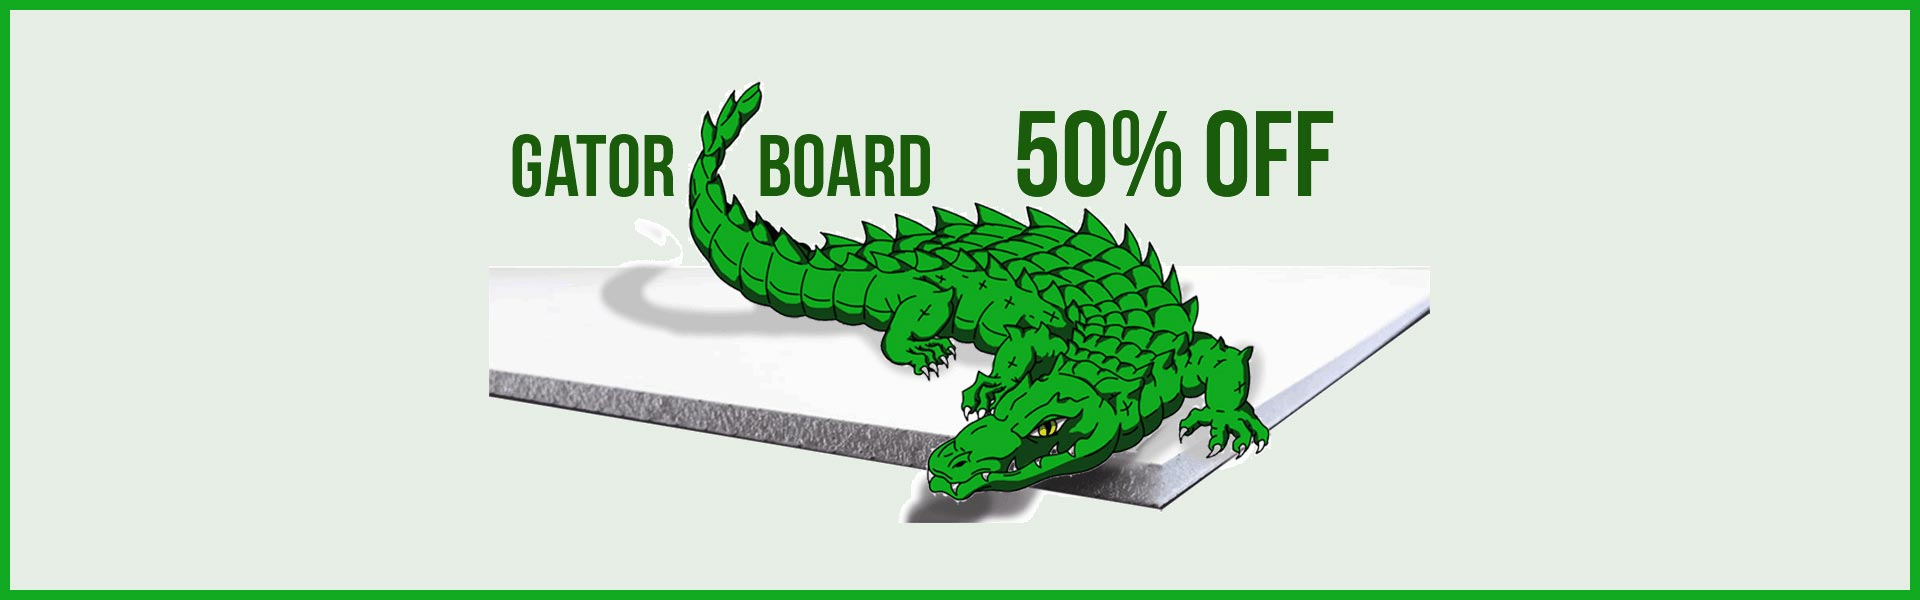 Gatorfoam Gator Board Discounted